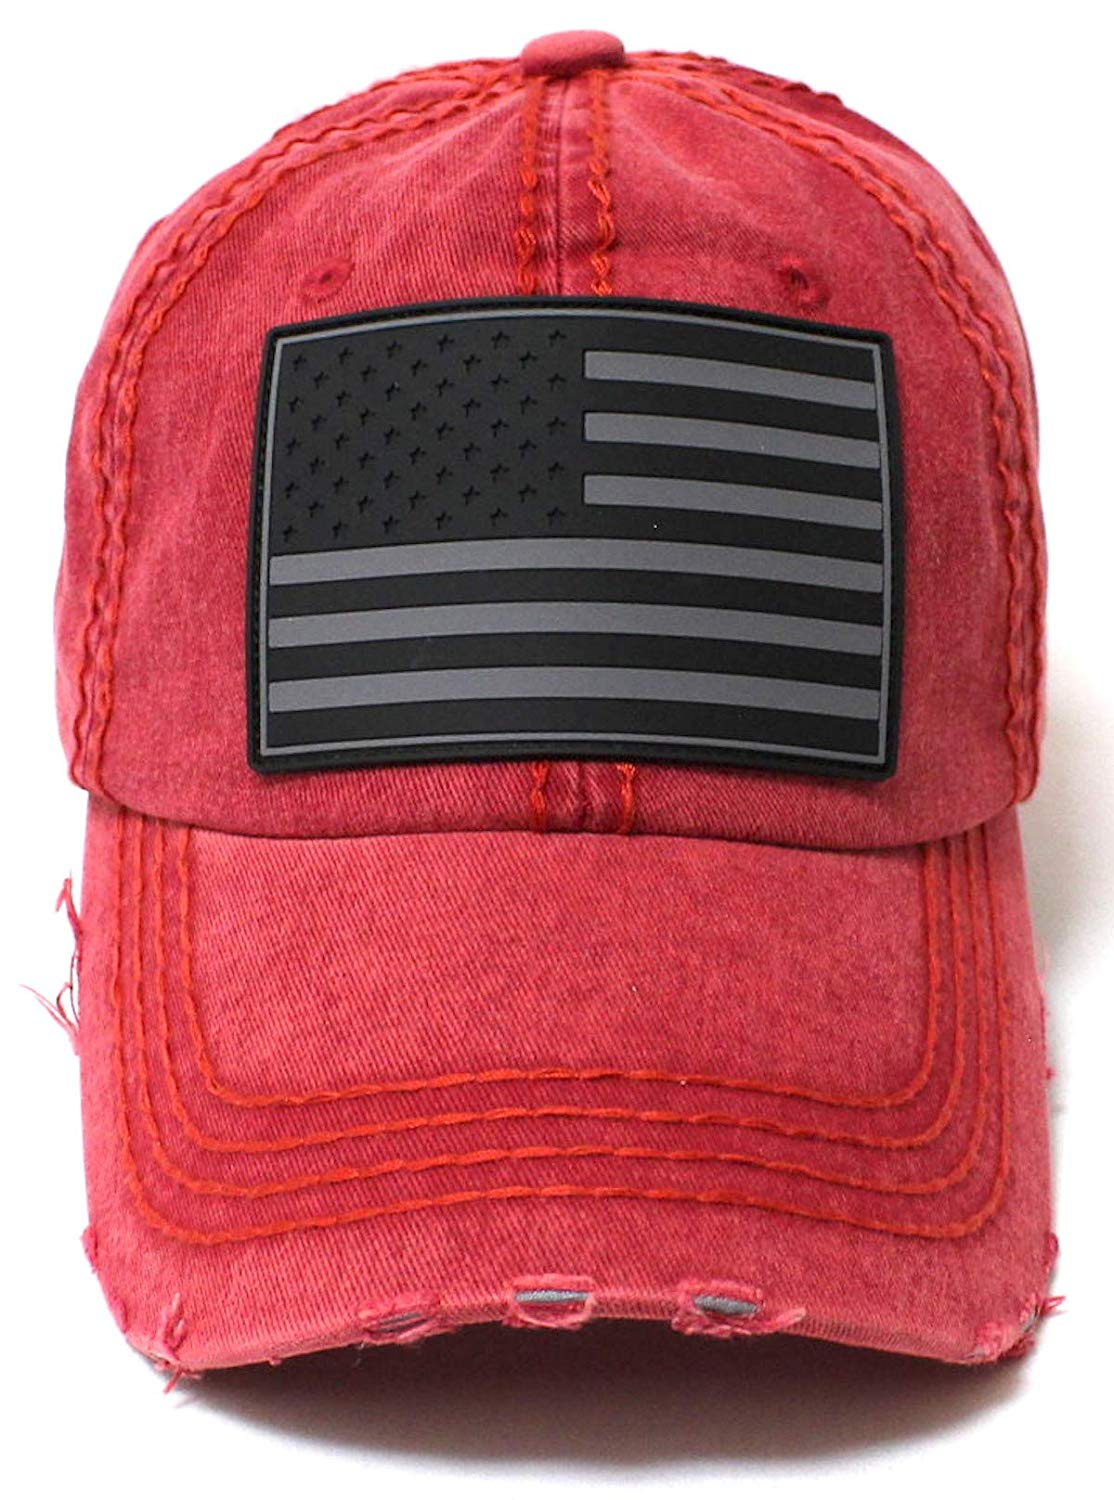 CAPS 'N VINTAGE Washed Red/Black American Flag Adjustable Baseball Hat